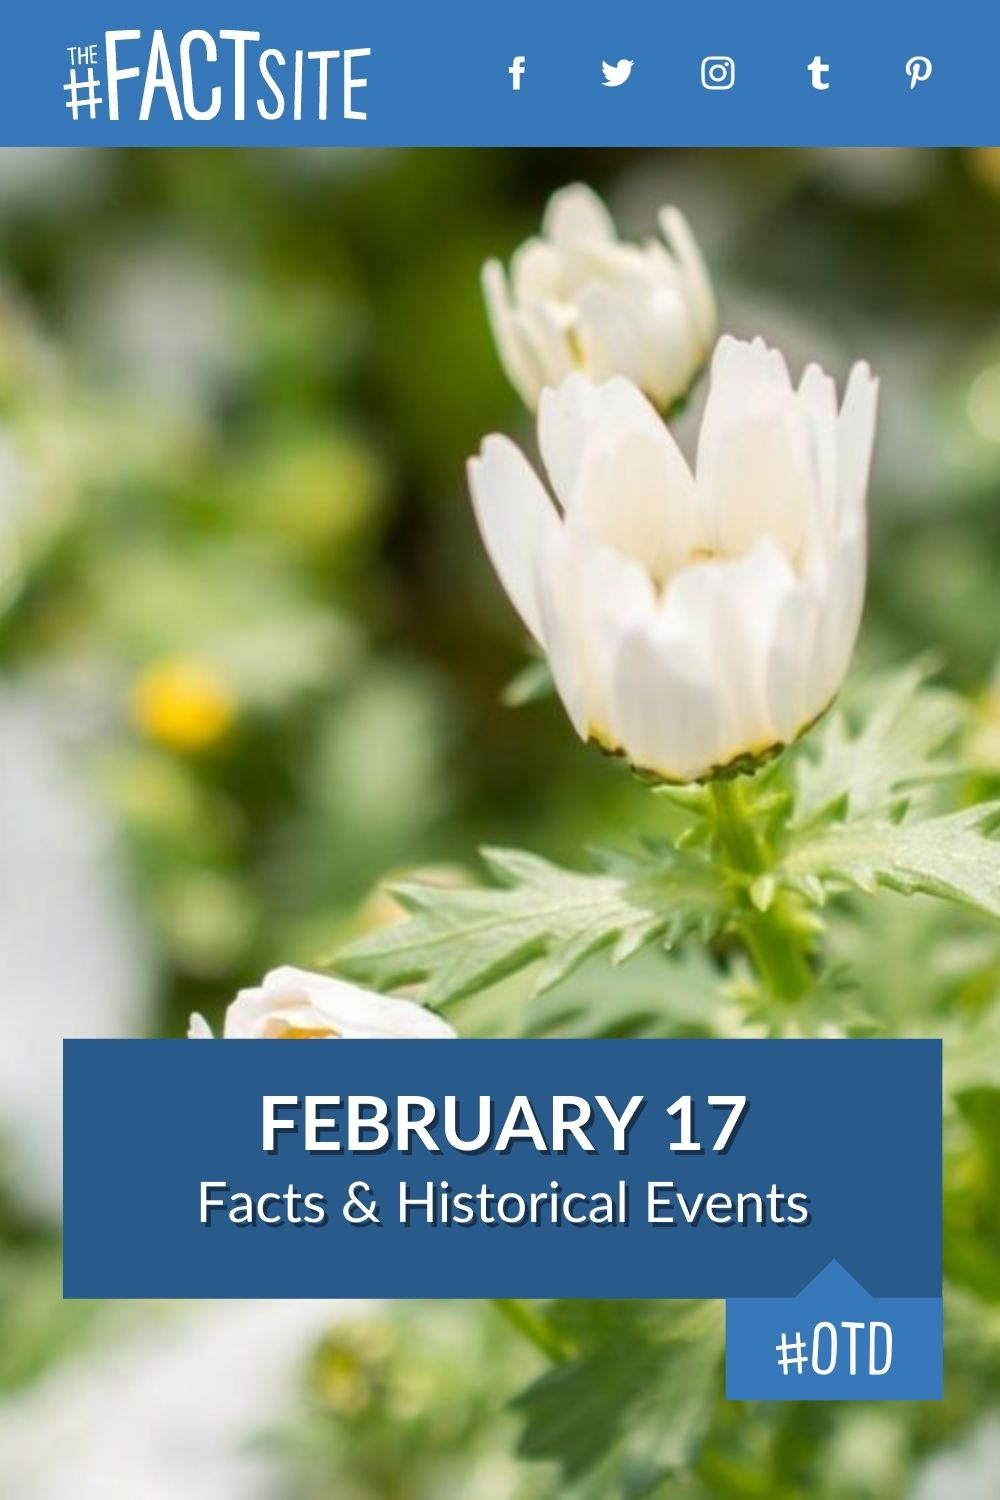 Facts & Historic Events That Happened on February 17